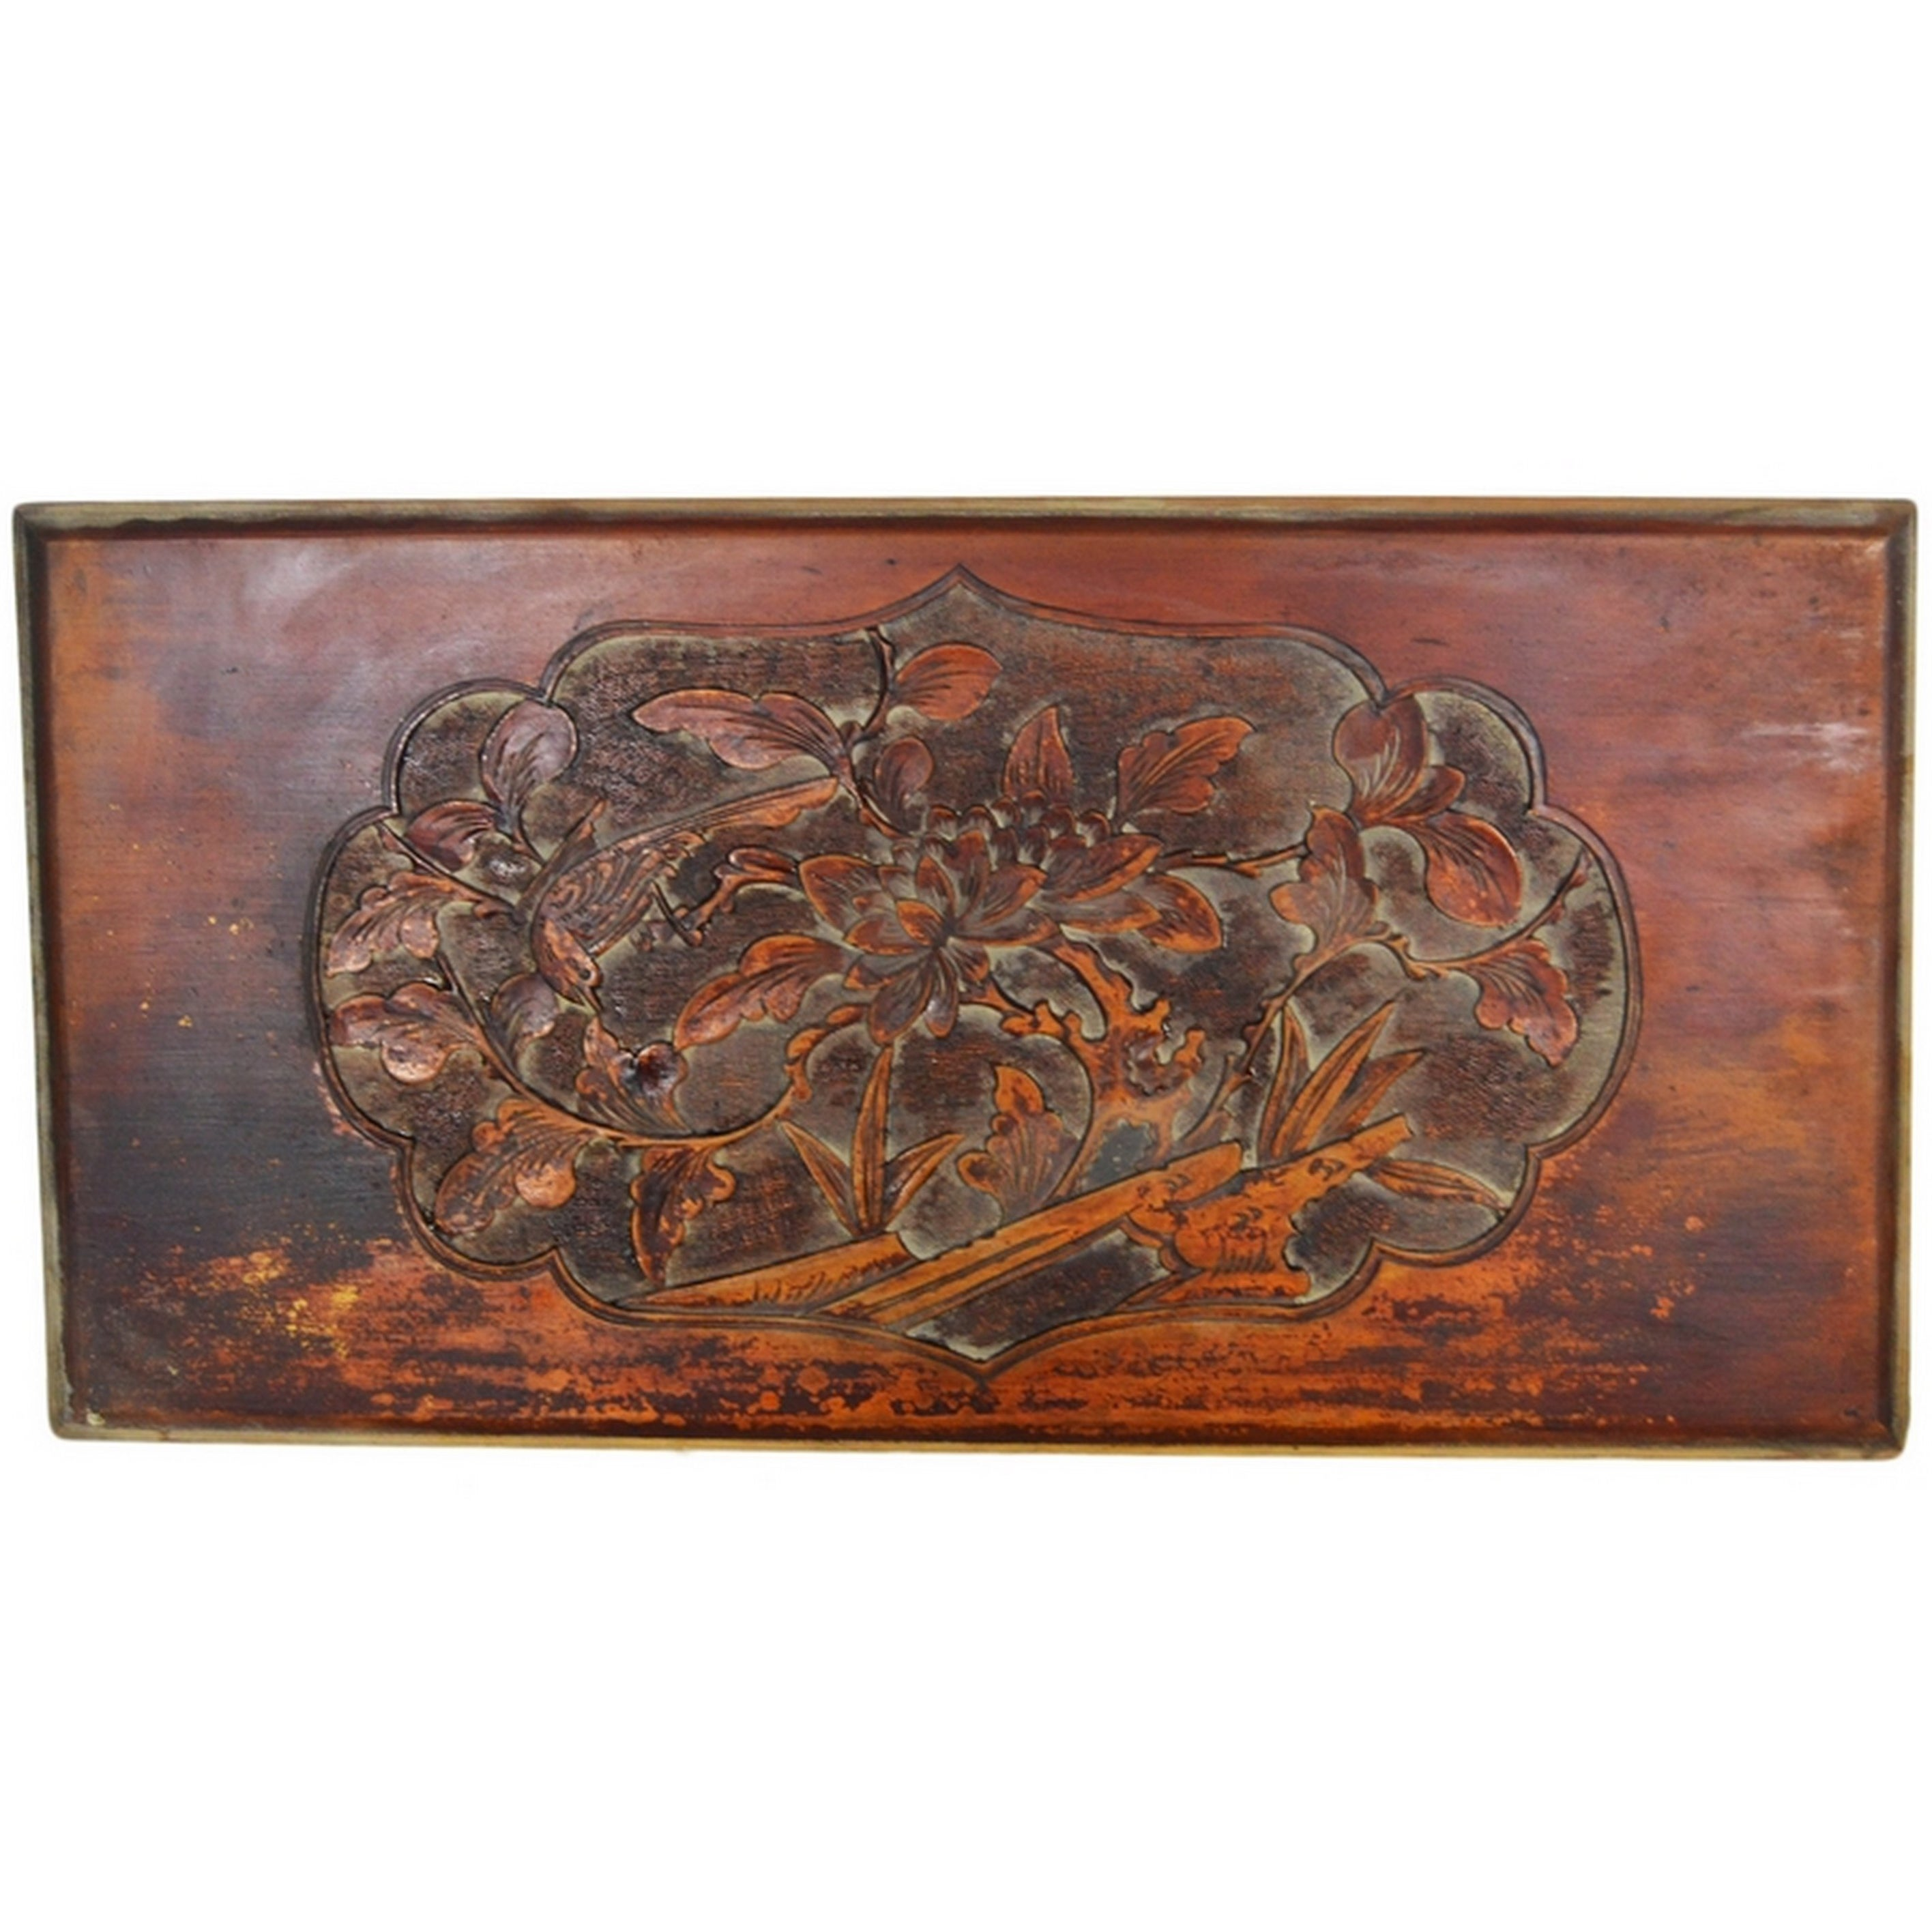 Chinese 19th Century Hand-Carved Rosewood Lacquered Bird and Foliage Wall Plaque